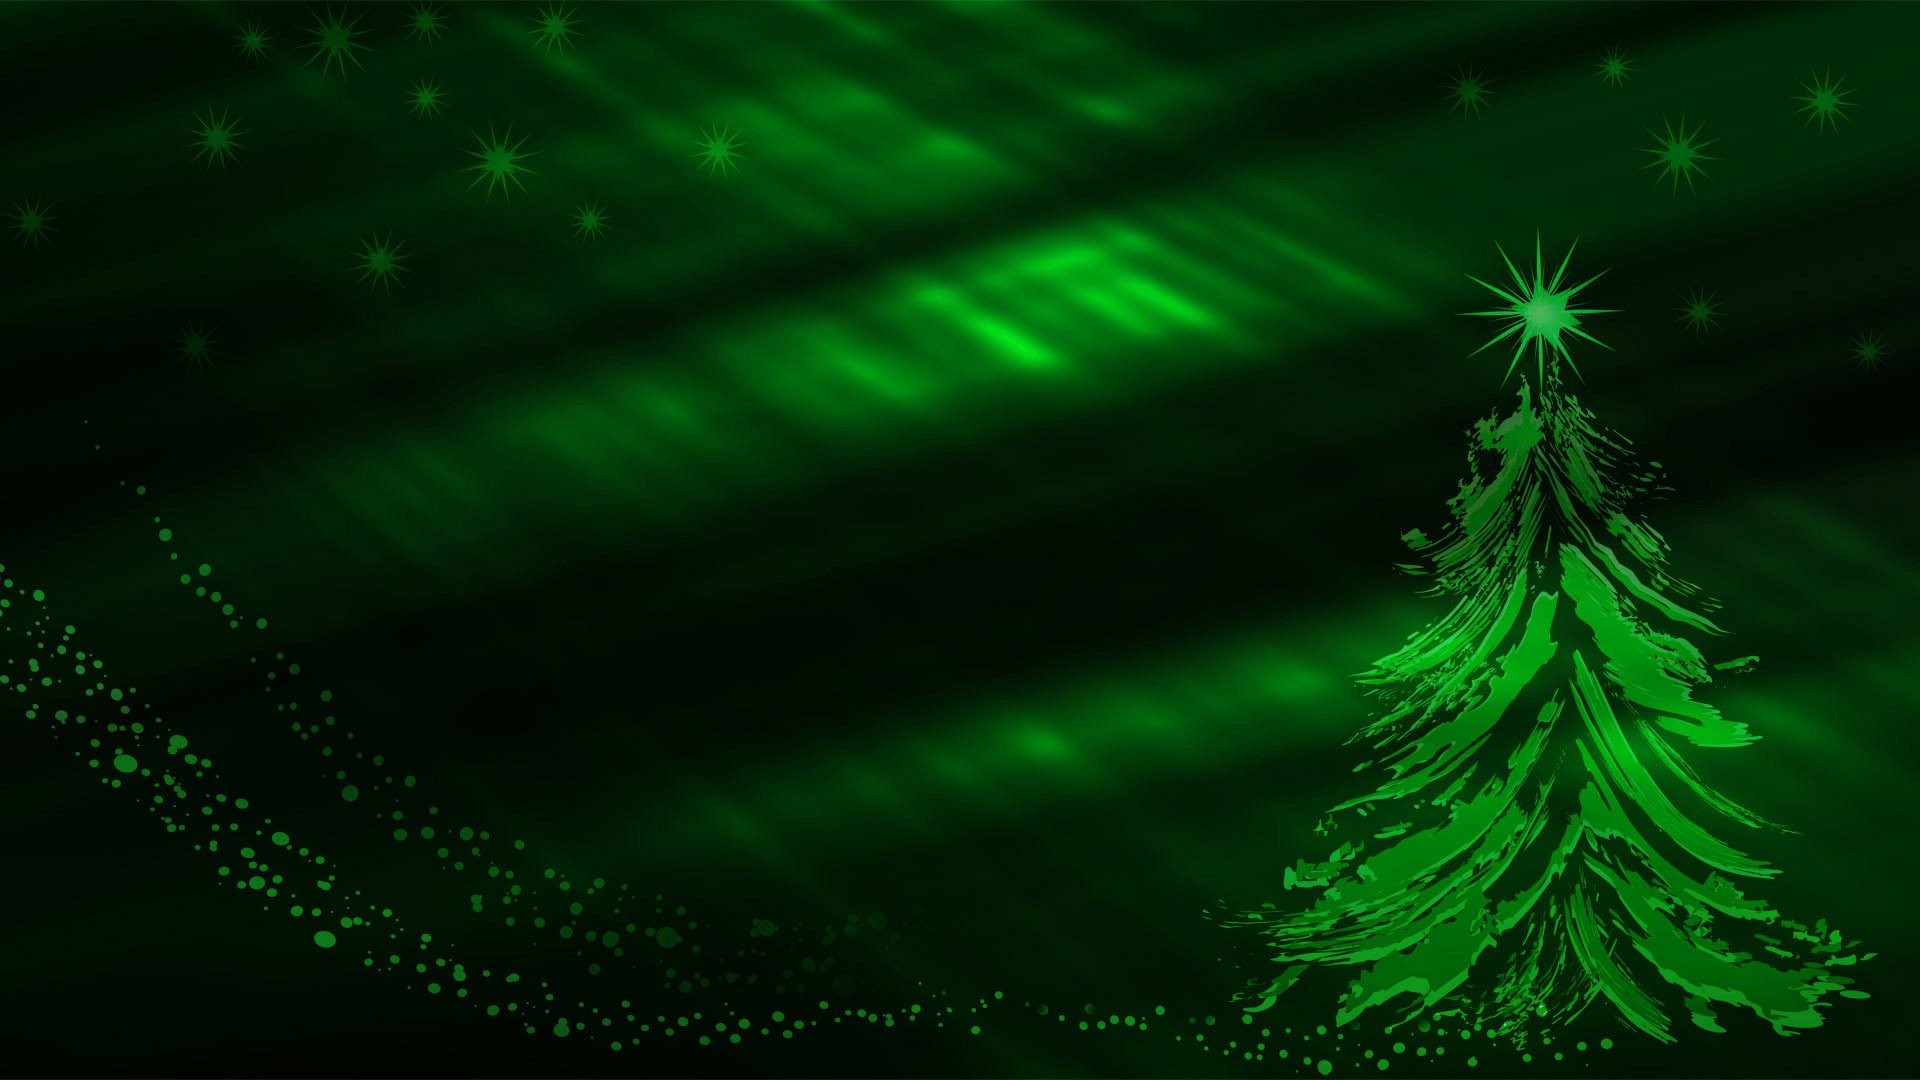 1920x1080 free, christmas, backgrounds, green, tree, christmas backgrounds